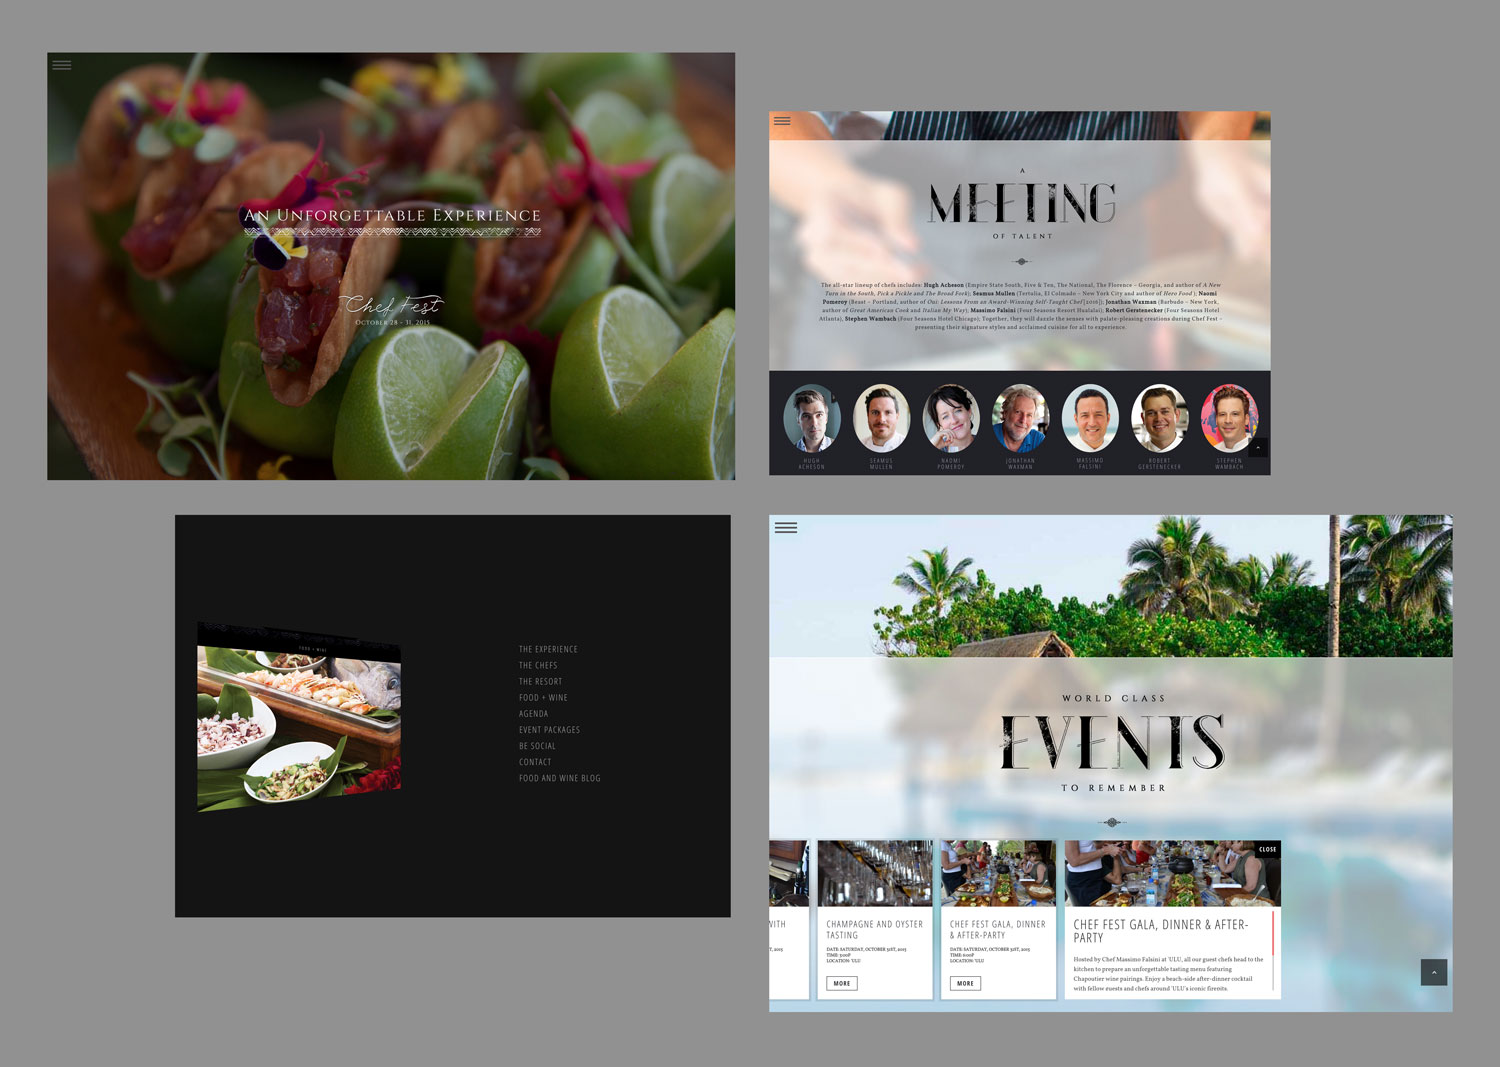 WEB / INTERACTIVE    Chef Fest Hualalai    Design Firm  -THEORY   Client  -Four Seasons Resort Hualalai   URL  - foodandwinehualalai.com    Art Director  -Ryan Brant   Designer  -Fabrice Ayivi-Ga Togbassa   Developer  -Ryan Brant   Design Problem  -The goal of the project was to develop a brand for Chef Fest Hualalai and extend that through a bespoke web experience that creates a special and unique extension of the Four Seasons brand and reflect the experience awaiting connoisseurs looking to stand shoulder to shoulder with the best culinary talent in the world.   Design Solution  -The Chef Fest site creates a recognizable but edgier experience than the typical corporate website, extending a unique level of intimacy for the event that supports the interaction with chefs that the event provides attendees. It is this strong alignment of the website's design to the event experience that connected with the target demographic and led to increased sales conversions.